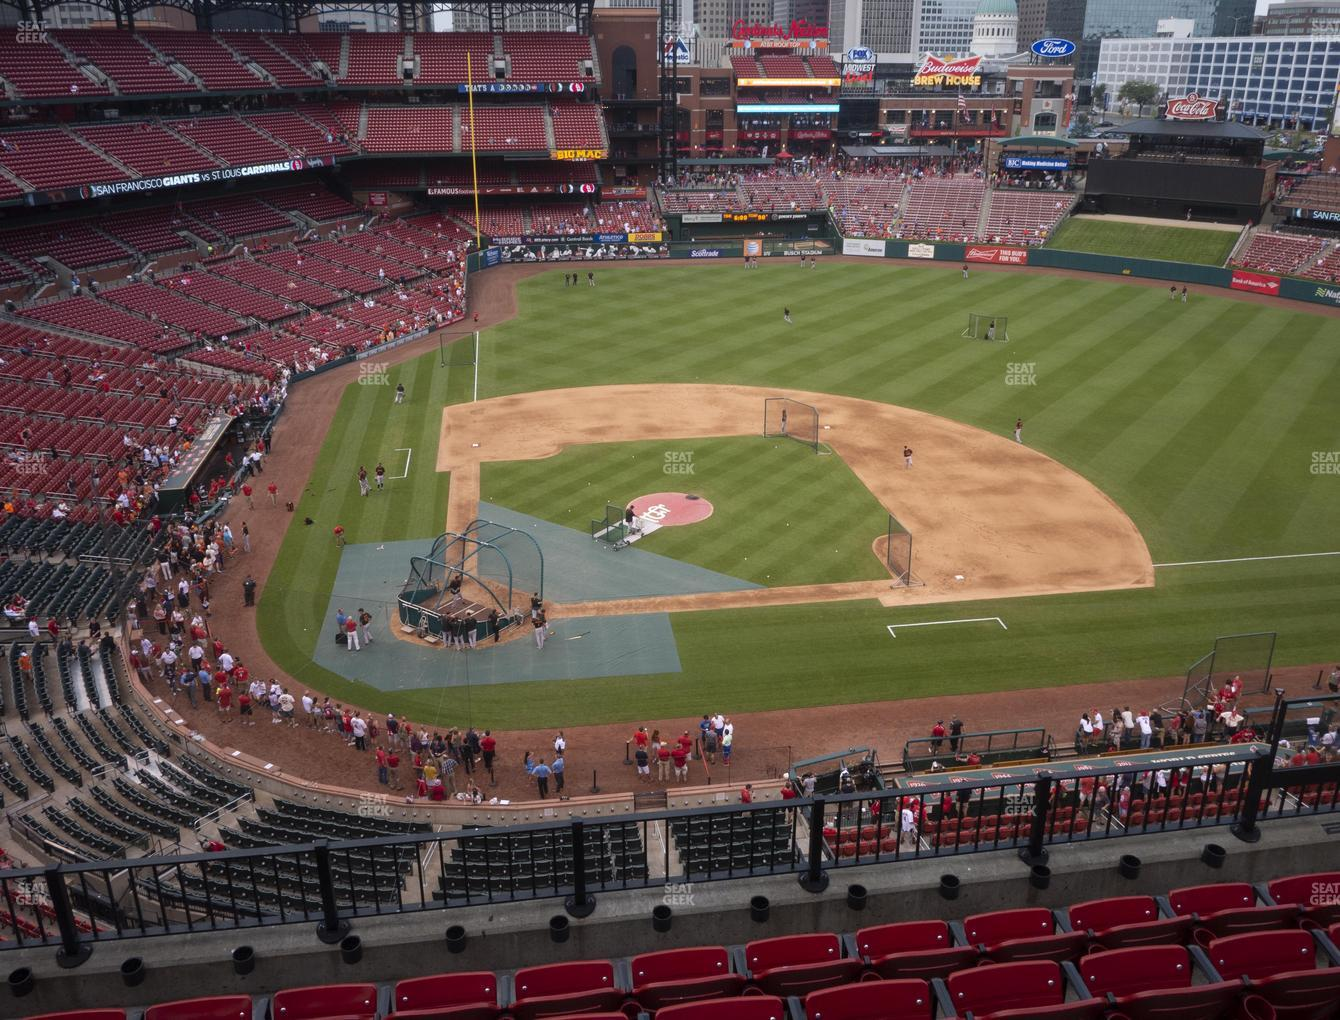 St. Louis Cardinals at Busch Stadium Infield Pavilion 346 View